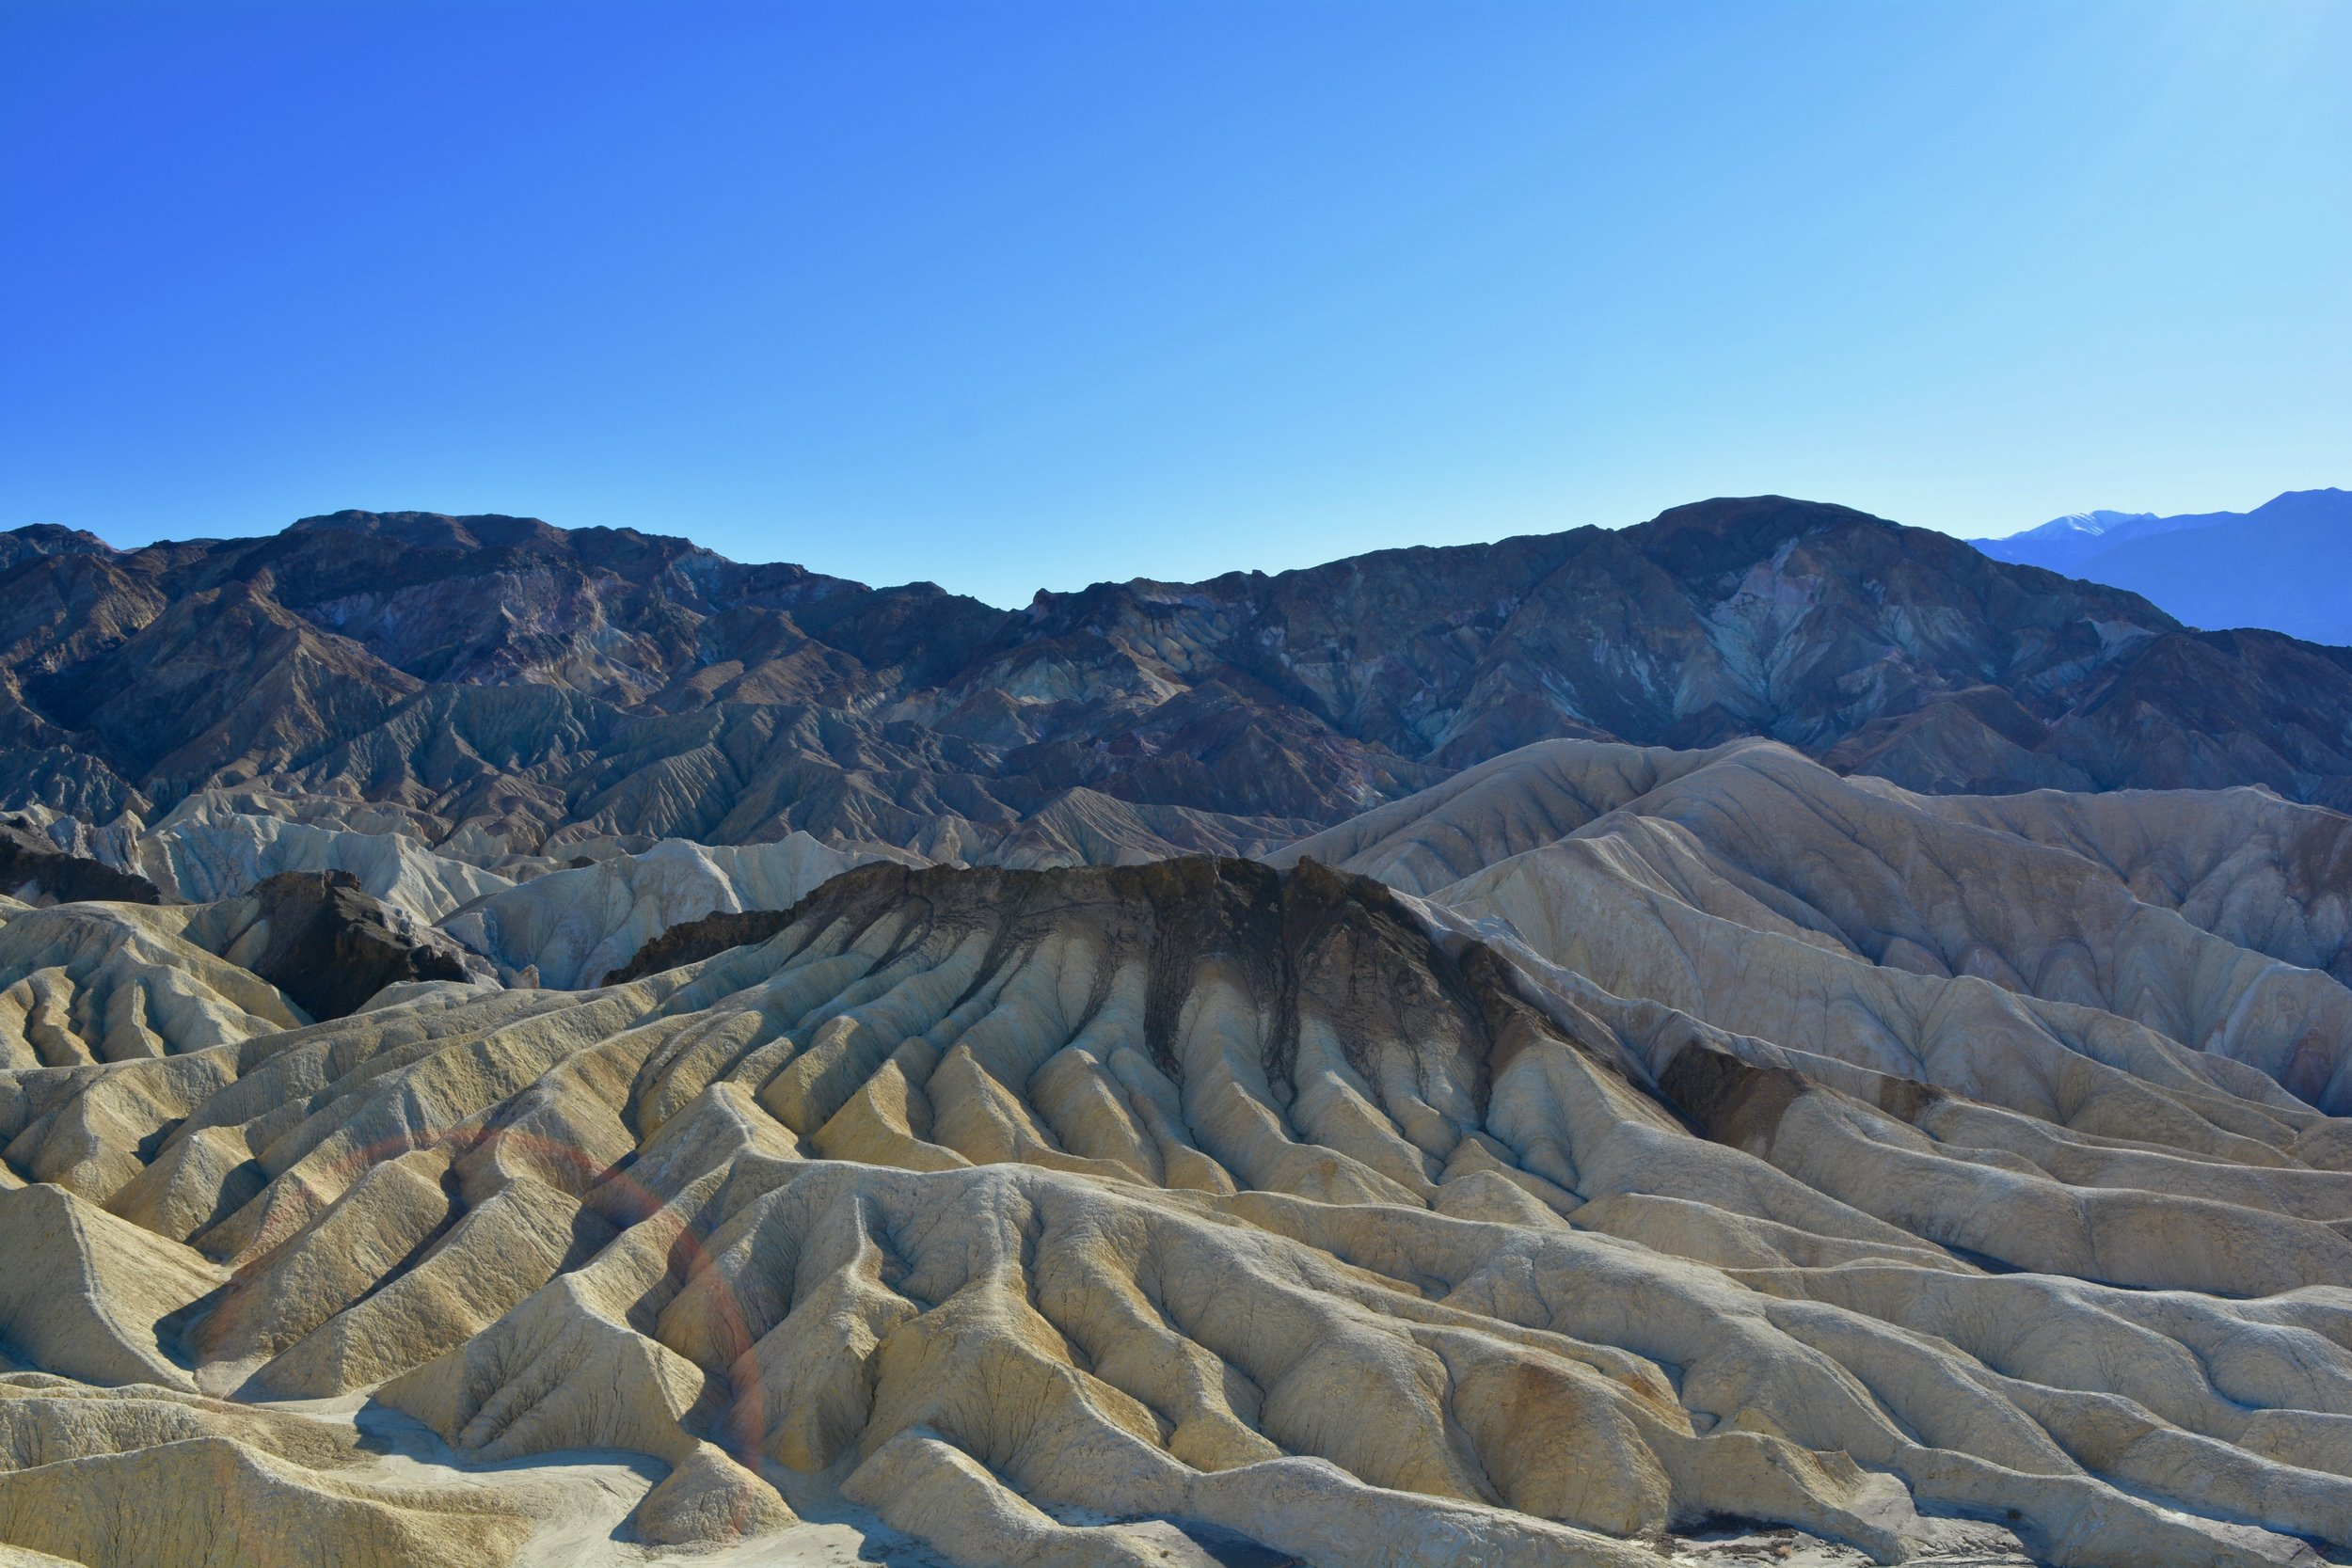 Badlands at Death Valley's Zabriskie Point